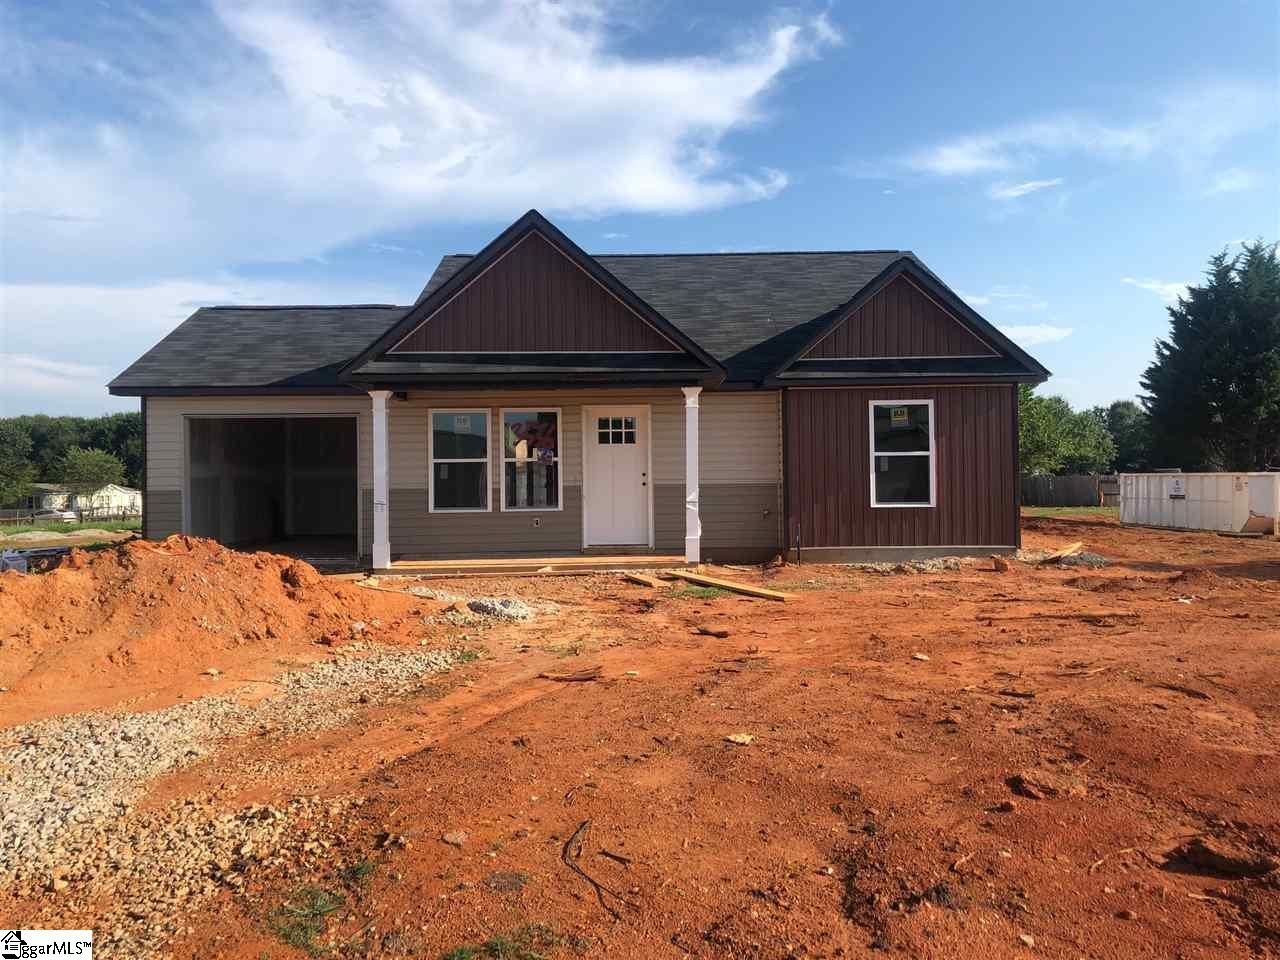 3556 Old Furnace Chesnee, SC 29323